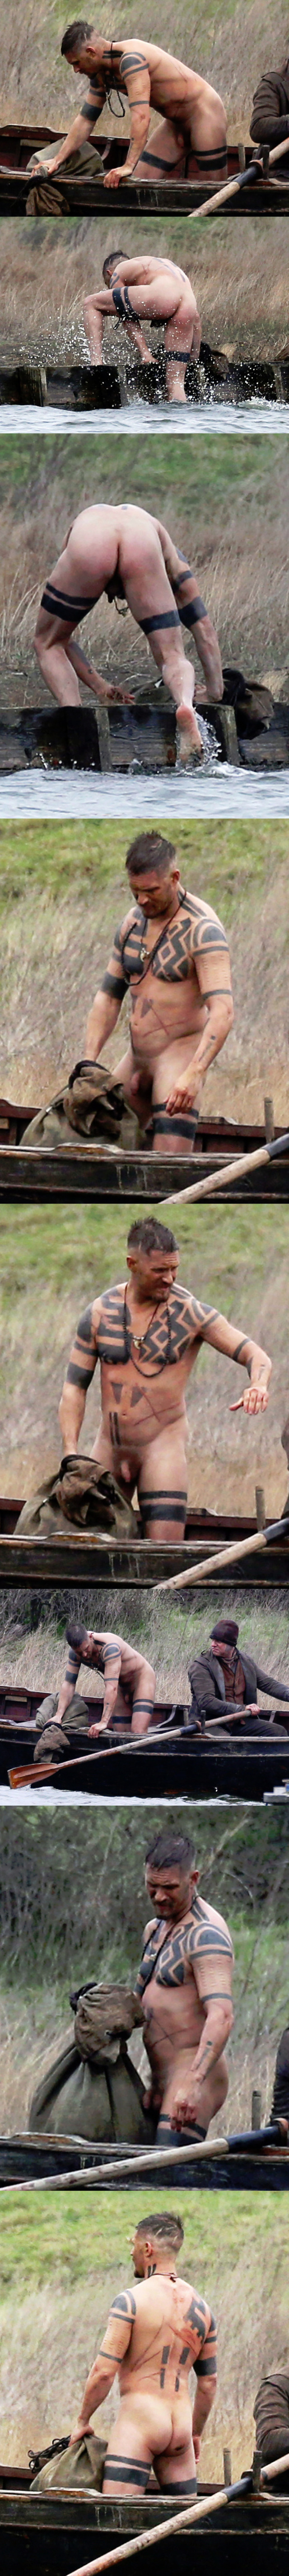 tom hardy naked dick ass uncensored movie taboo